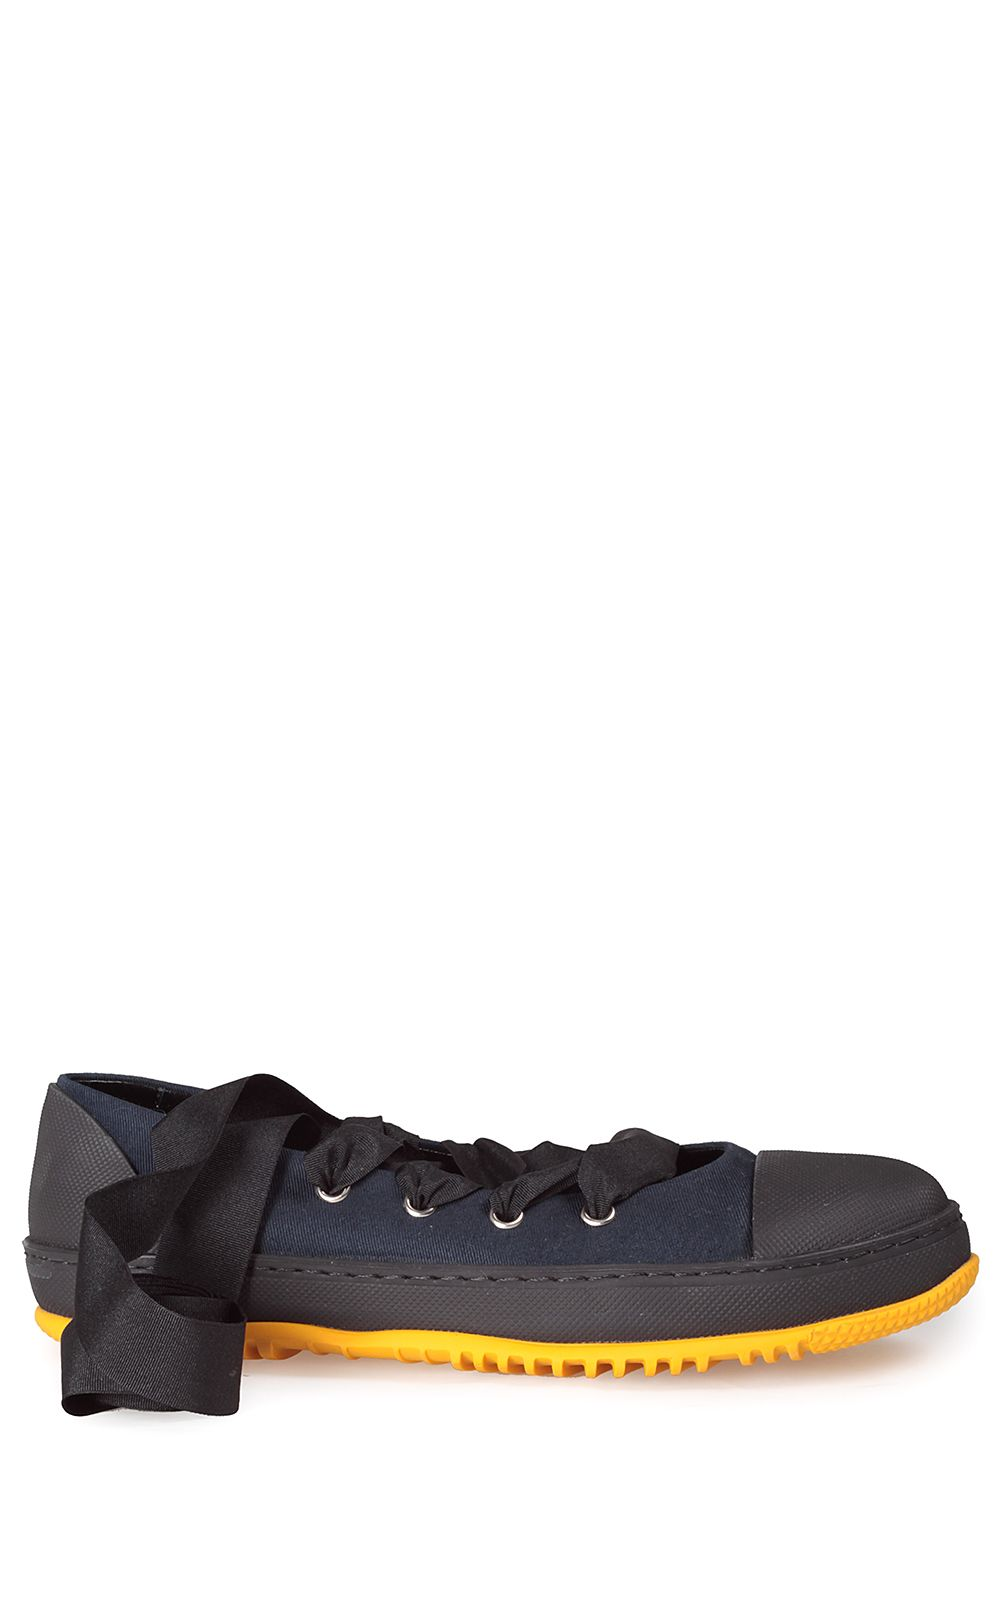 Lace-up canvas ballet-sneakers Marni bCffSrG